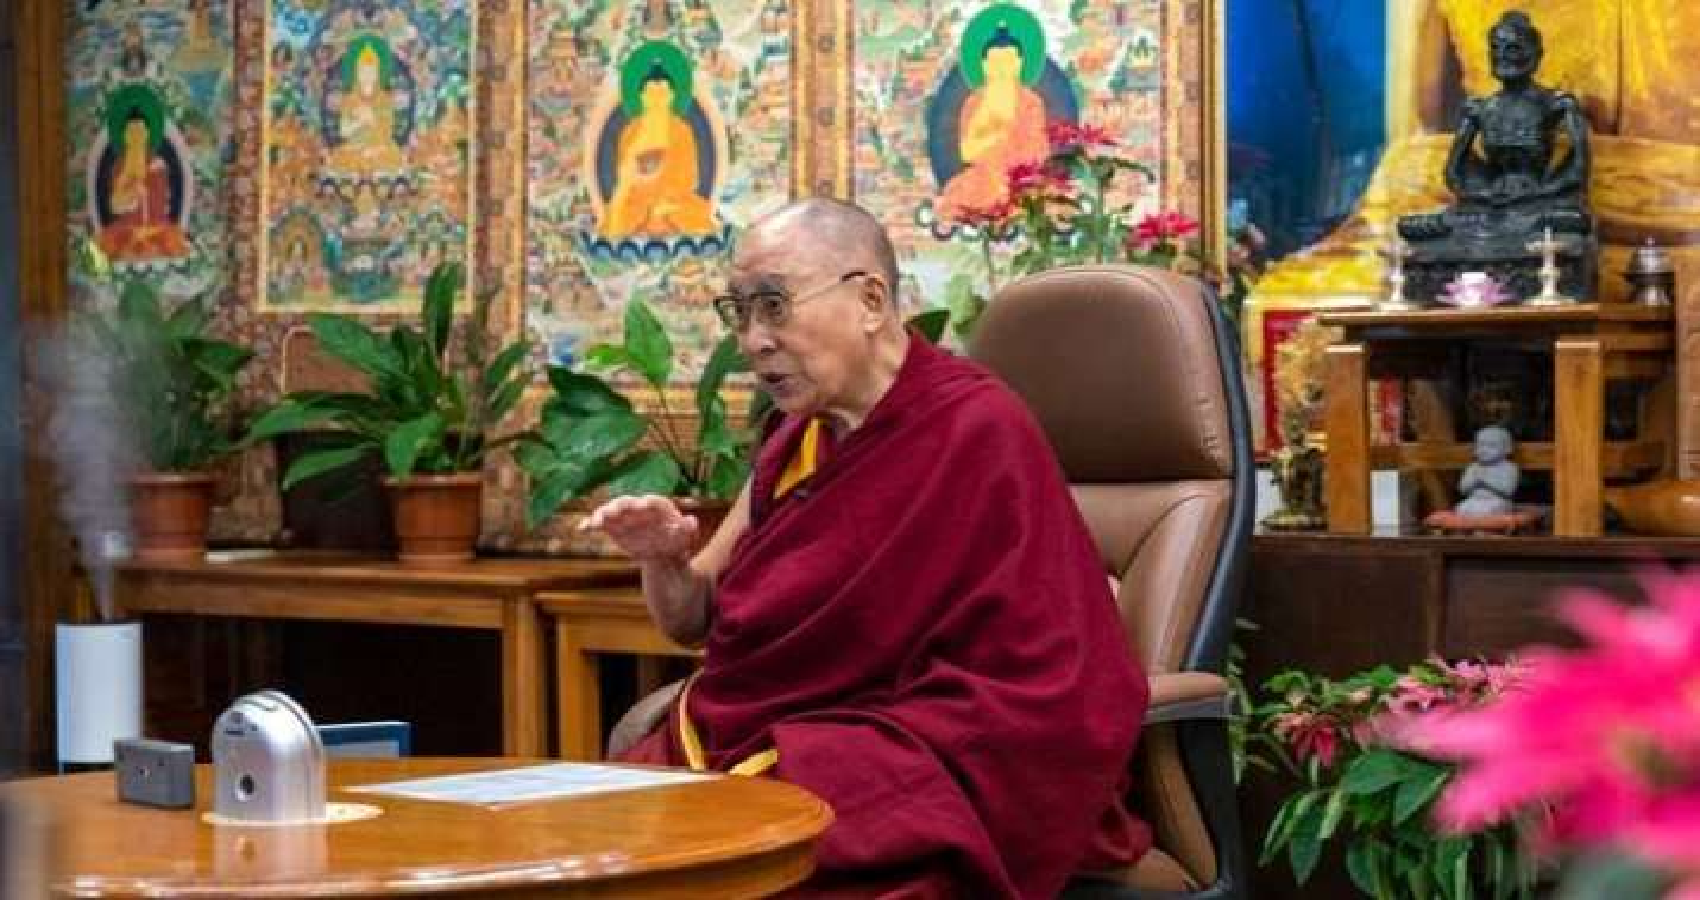 Dalai Lama Holds Dialogue With Russian Scientists On Research Into Buddhist Thukdam Meditation